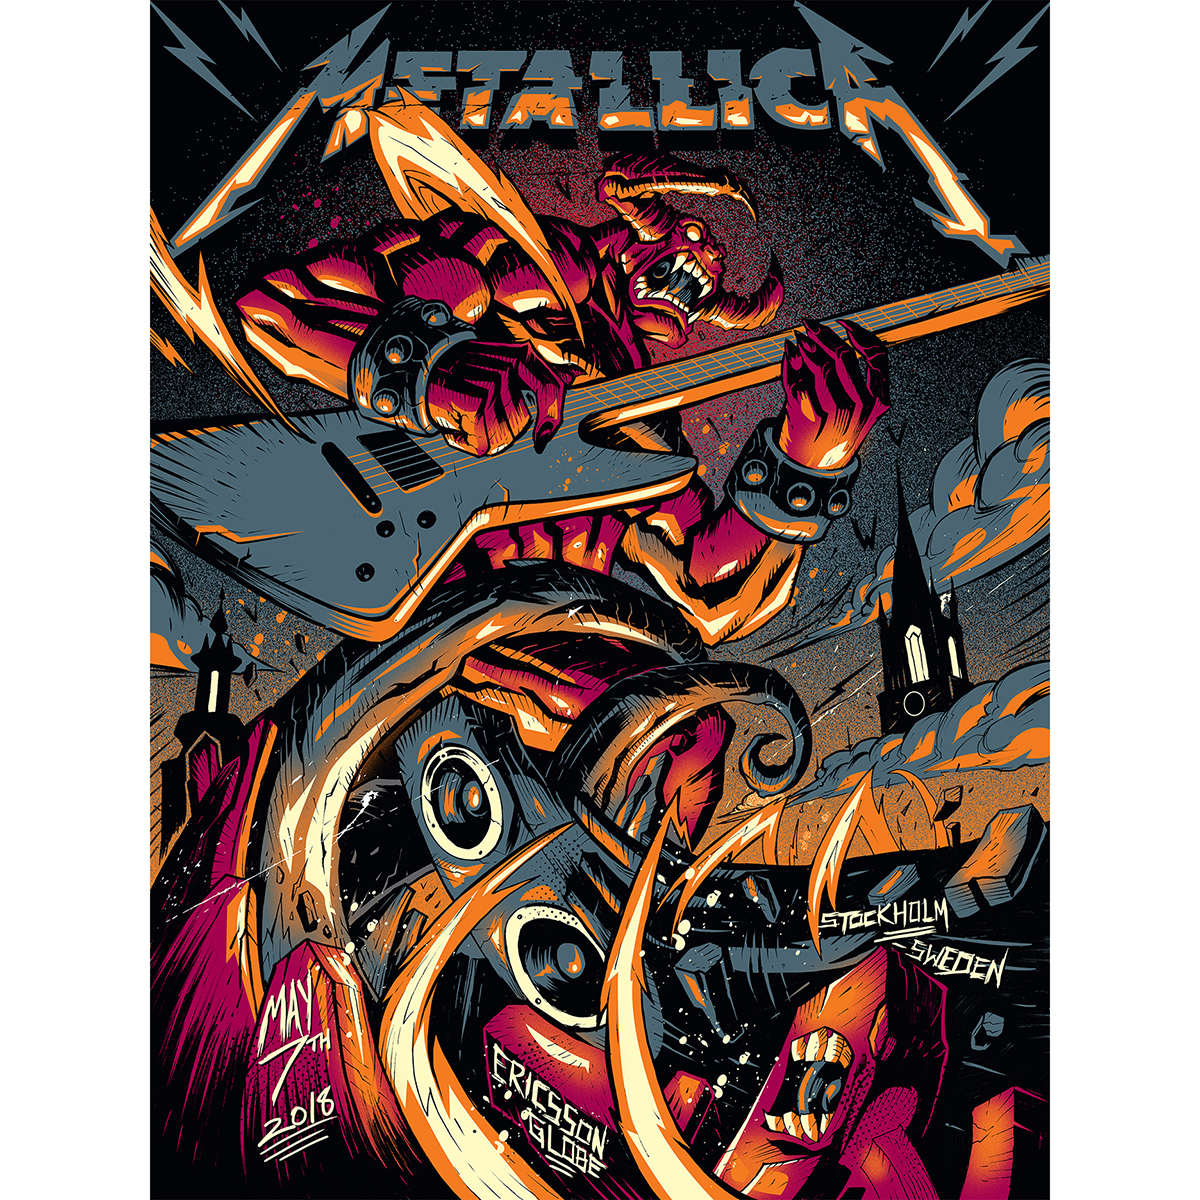 Stockholm May 7th – Limited Edition Numbered Screen Printed Event Poster - Metallica